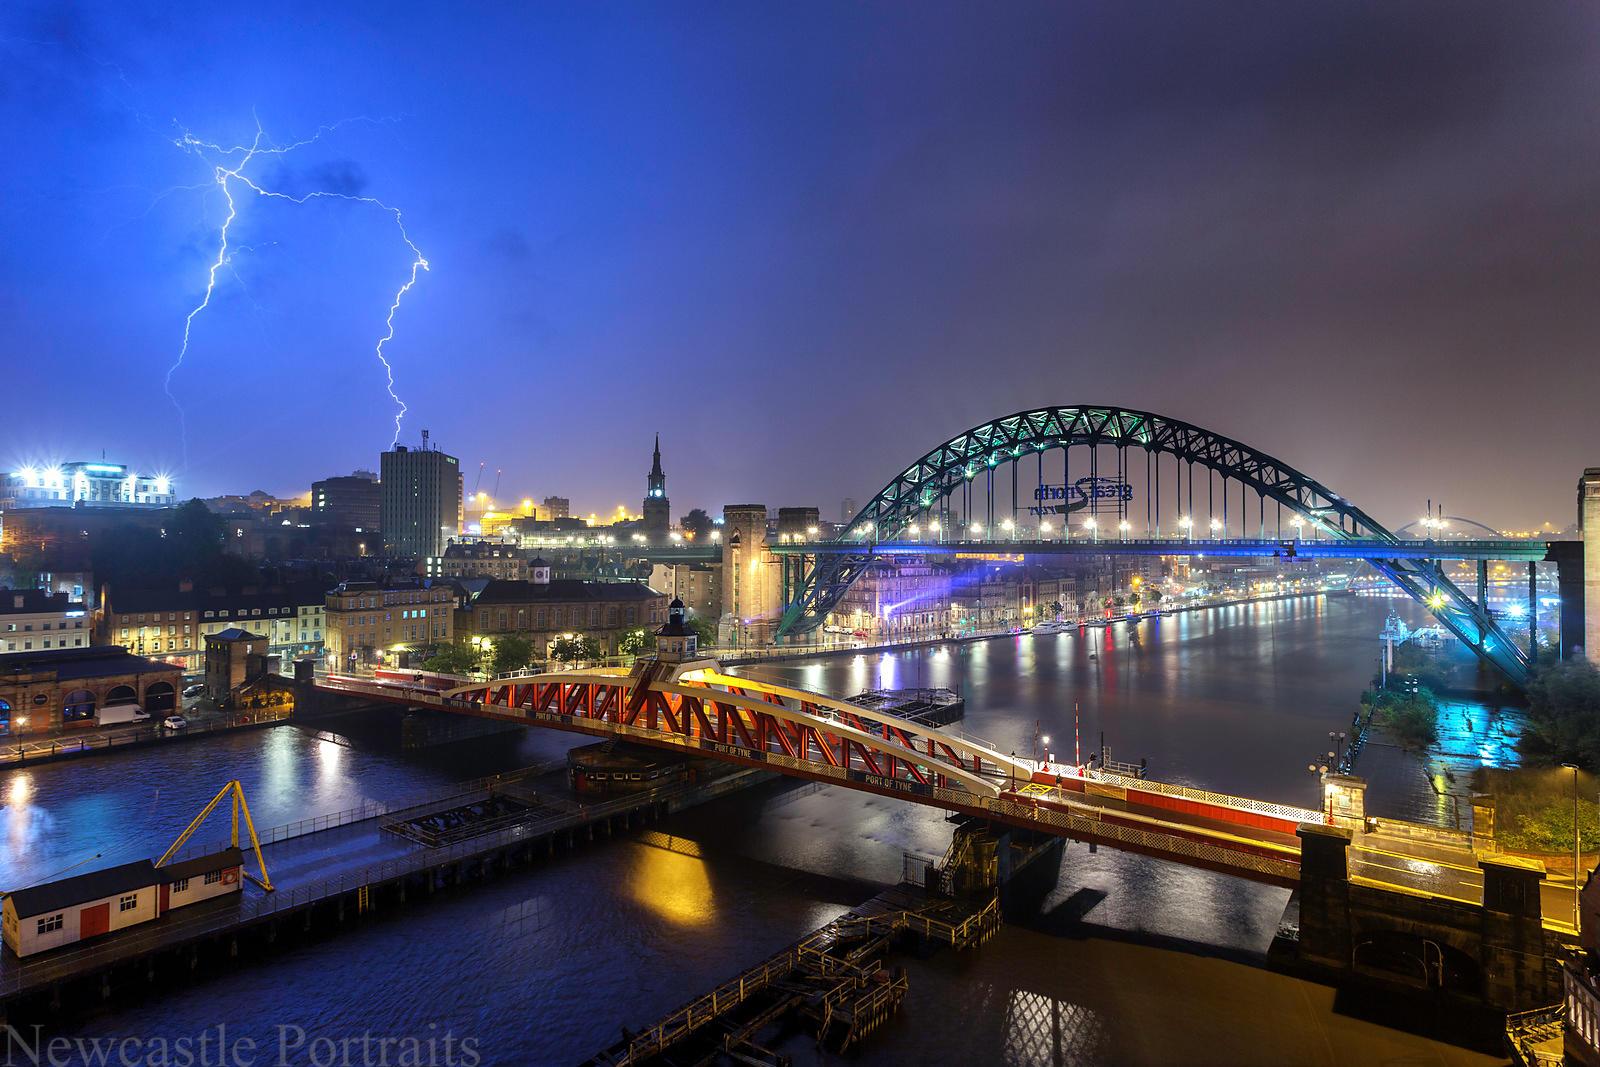 Flash of Lightning over Newcastle.